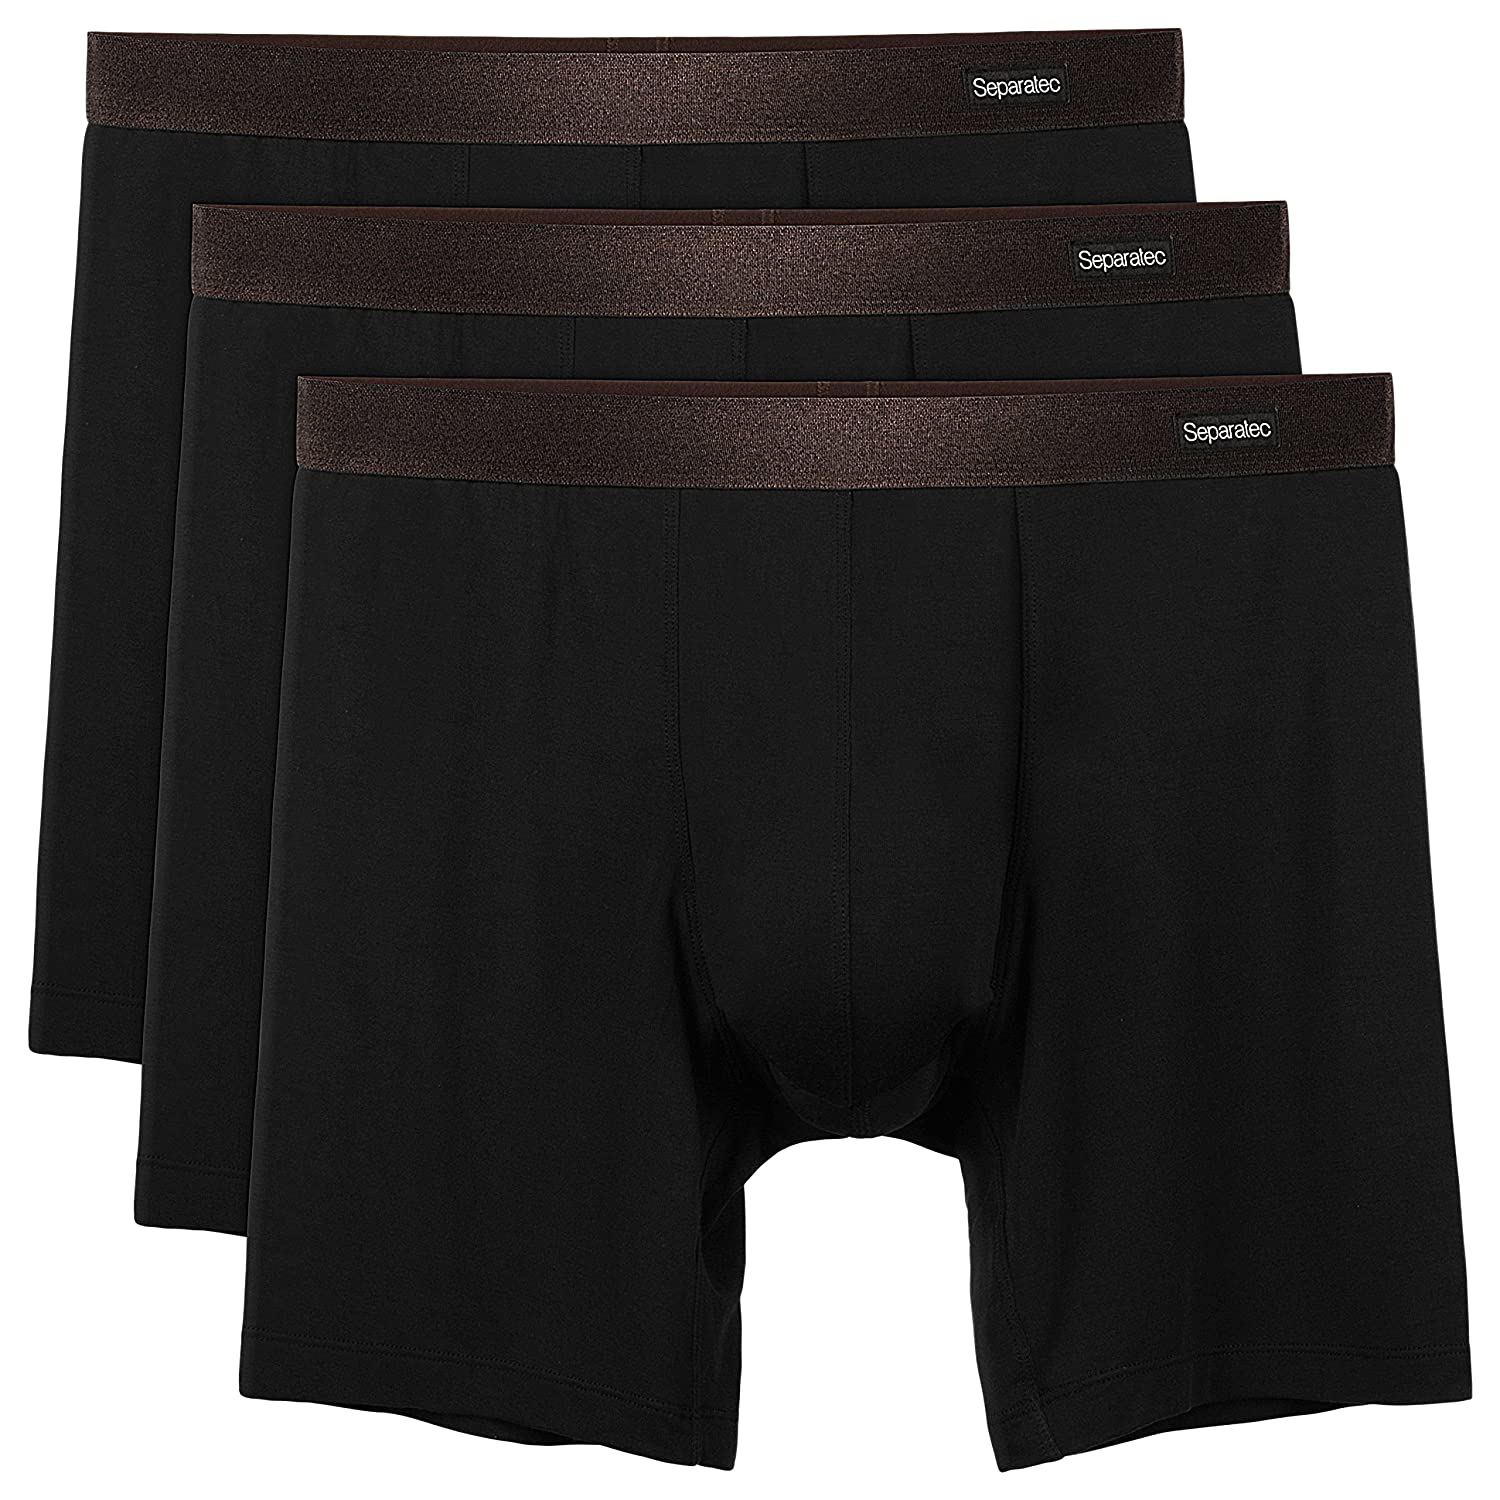 Separatec Men's 3 Pack Basic Bamboo Rayon Soft Breathable Pouch Underwear Boxer Briefs